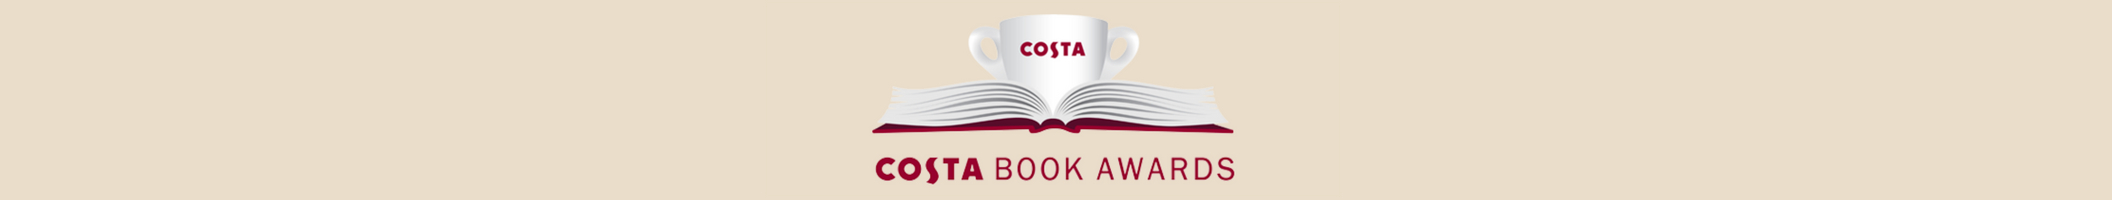 Costa Book Awards Banner